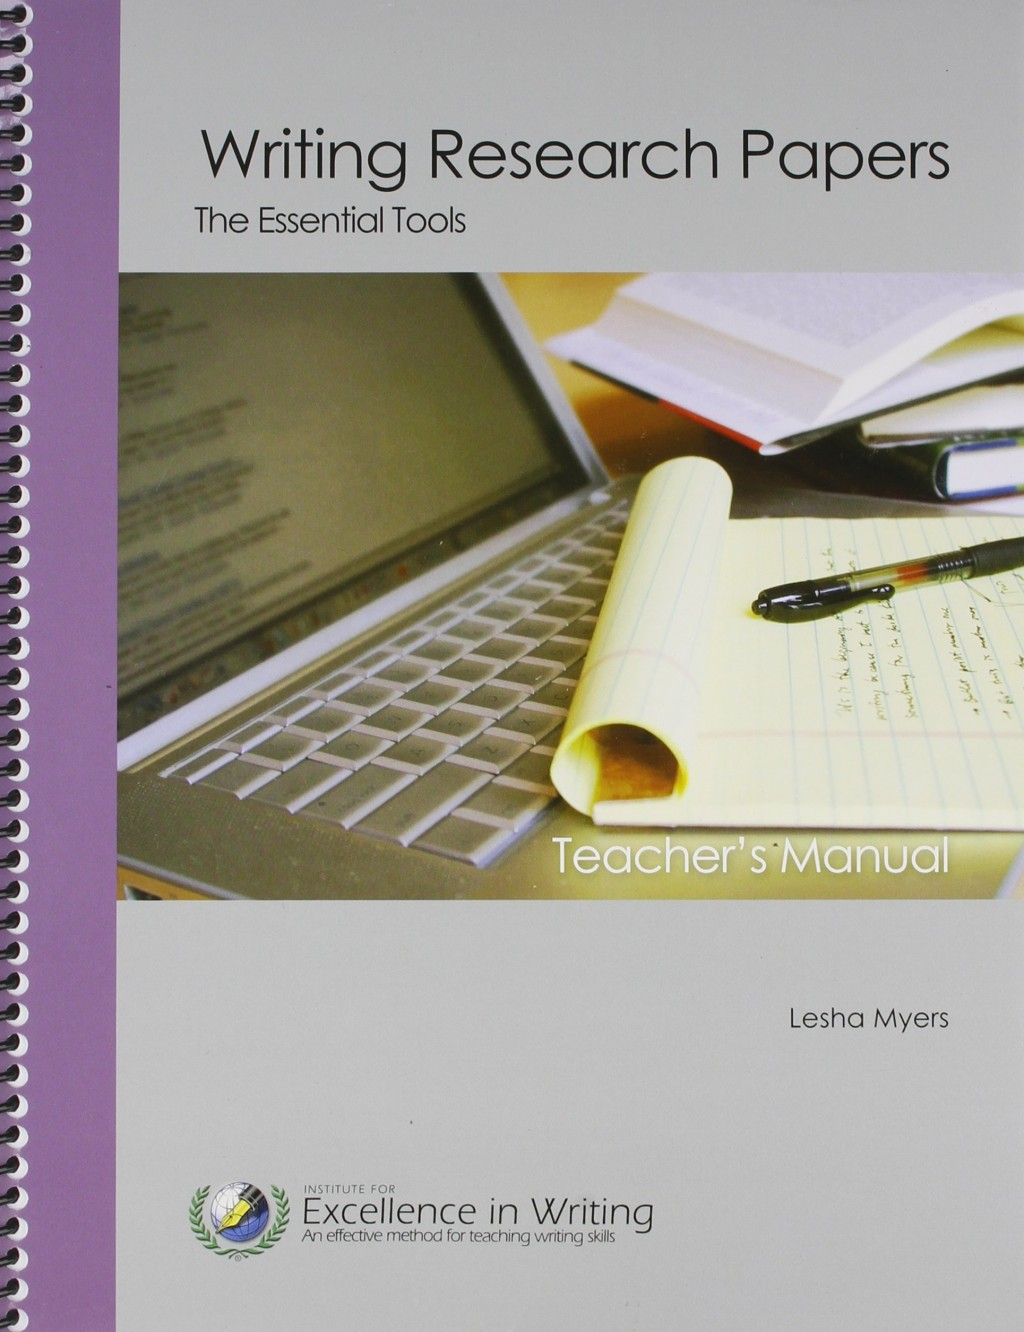 021 91ax63bn6xl Writing Research Striking Paper Papers By James Lester Pdf A Complete Guide 16th Edition Outline Large